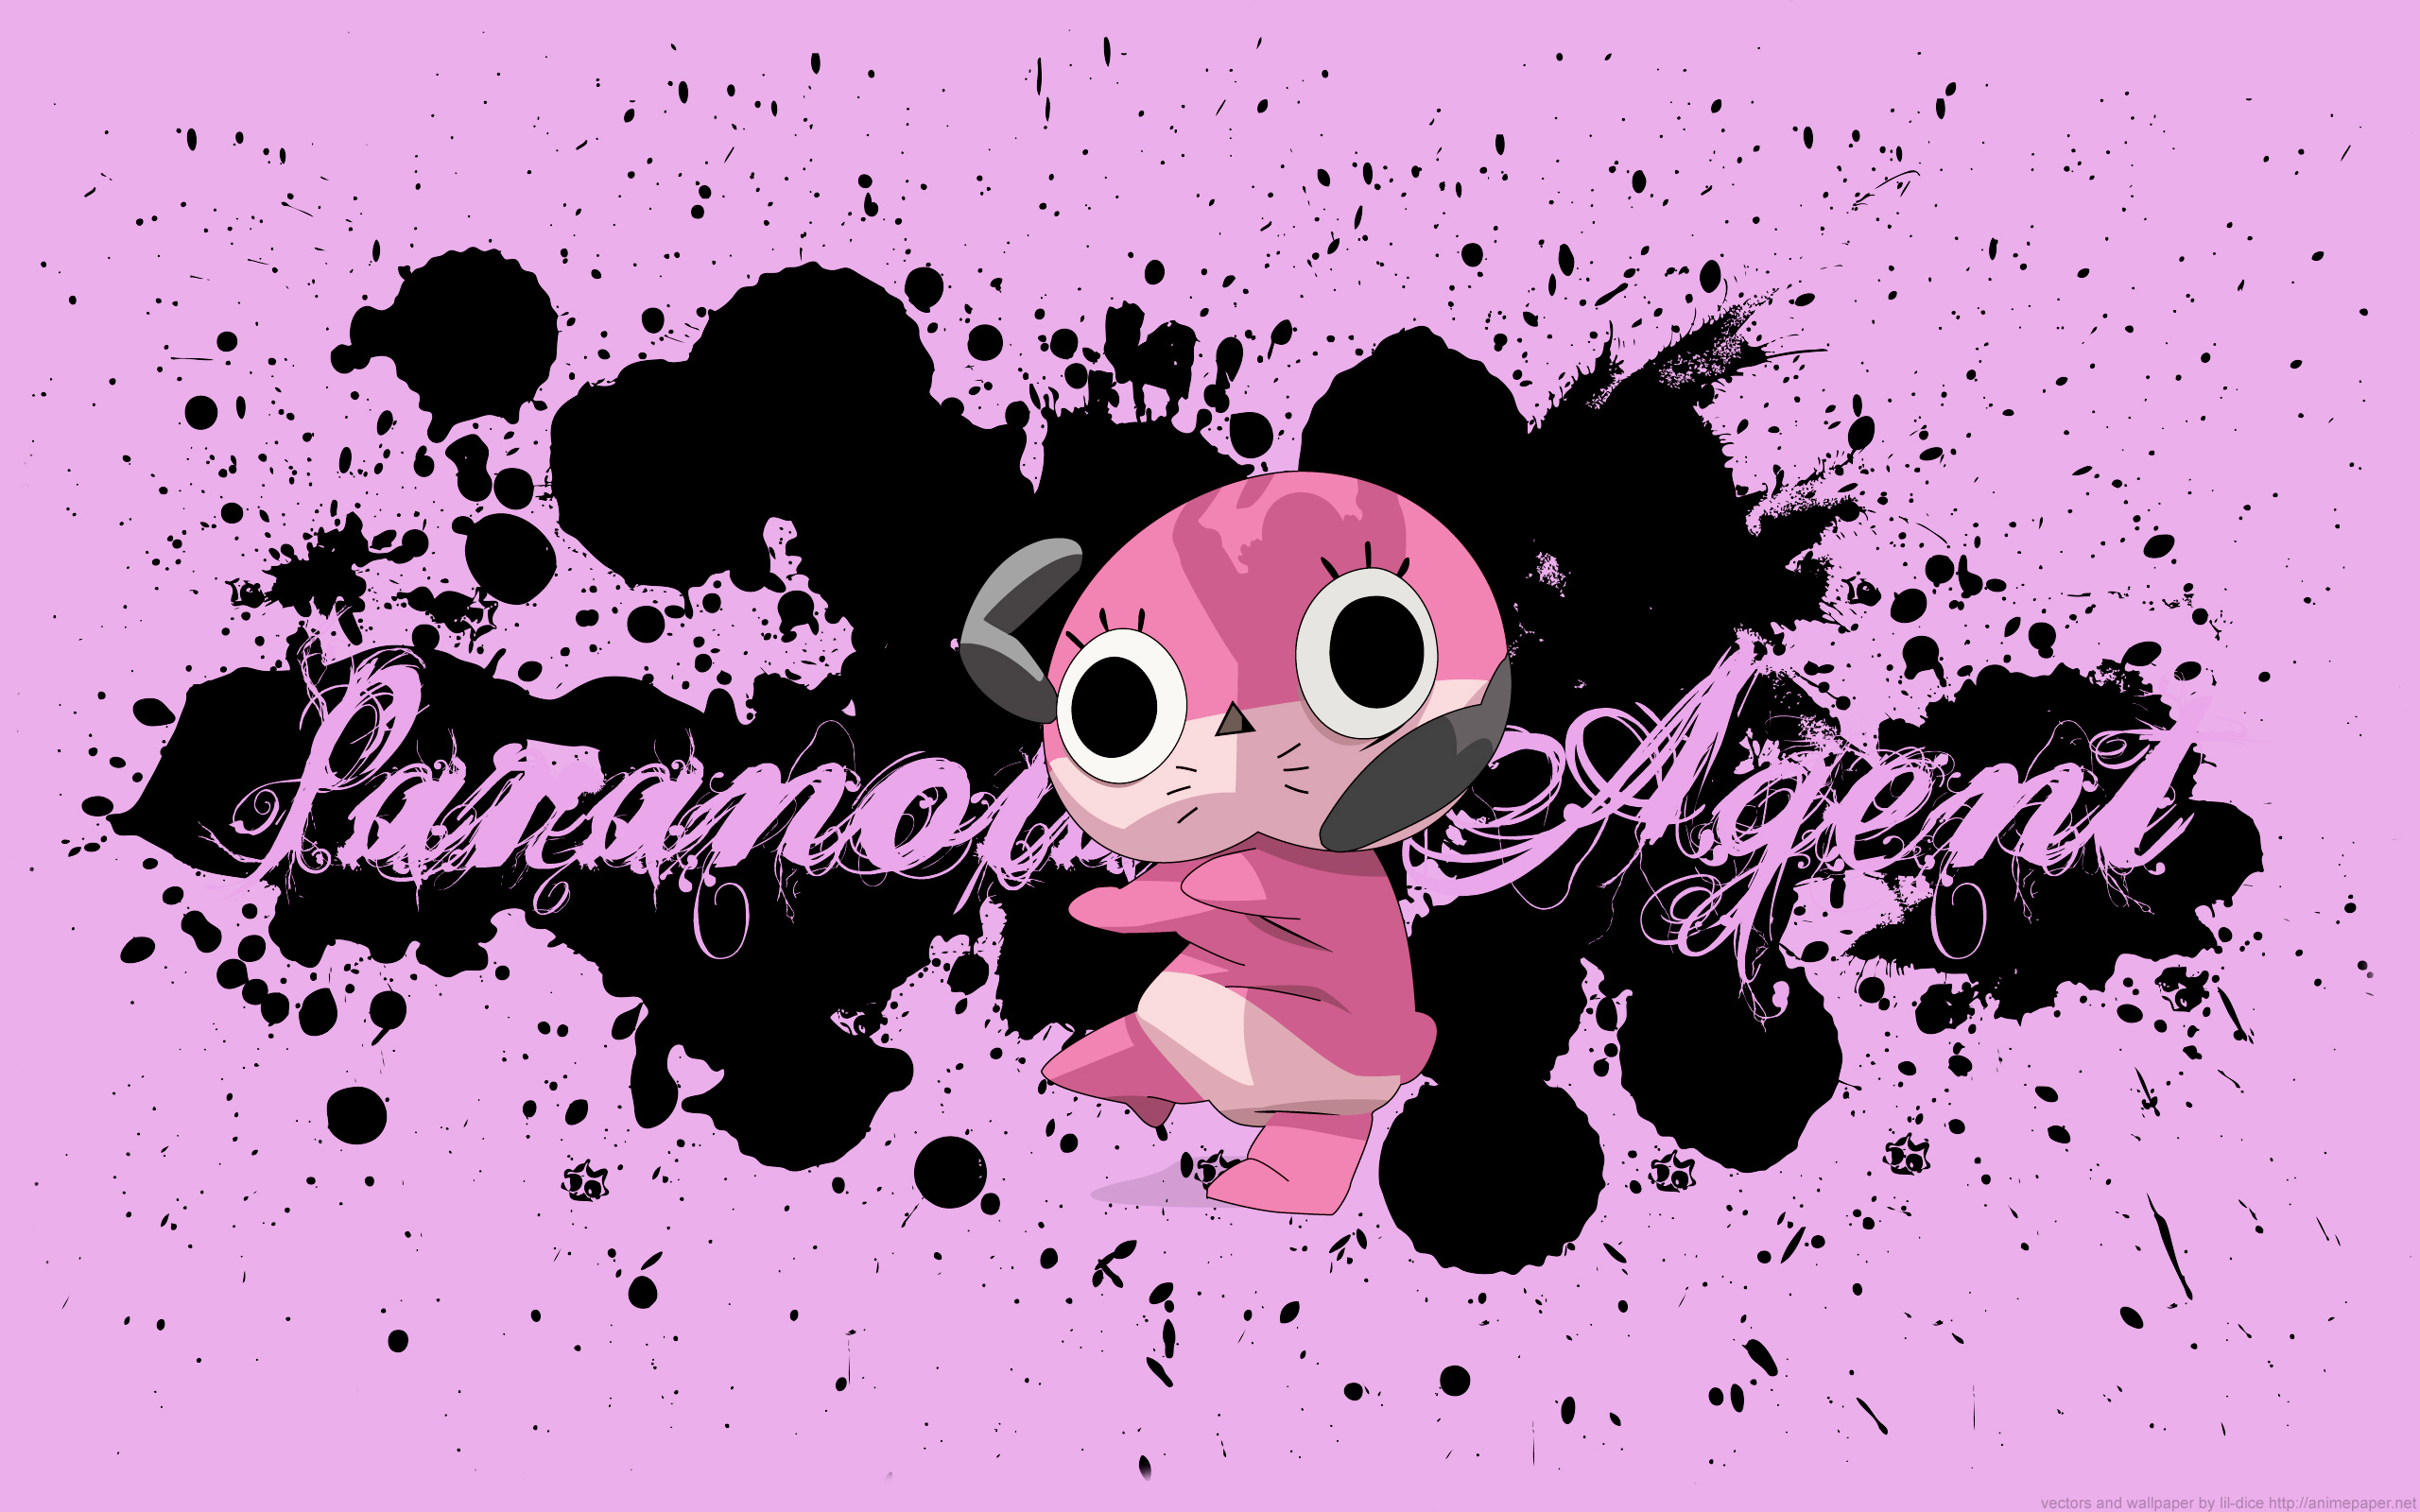 Paranoia Pink by tch